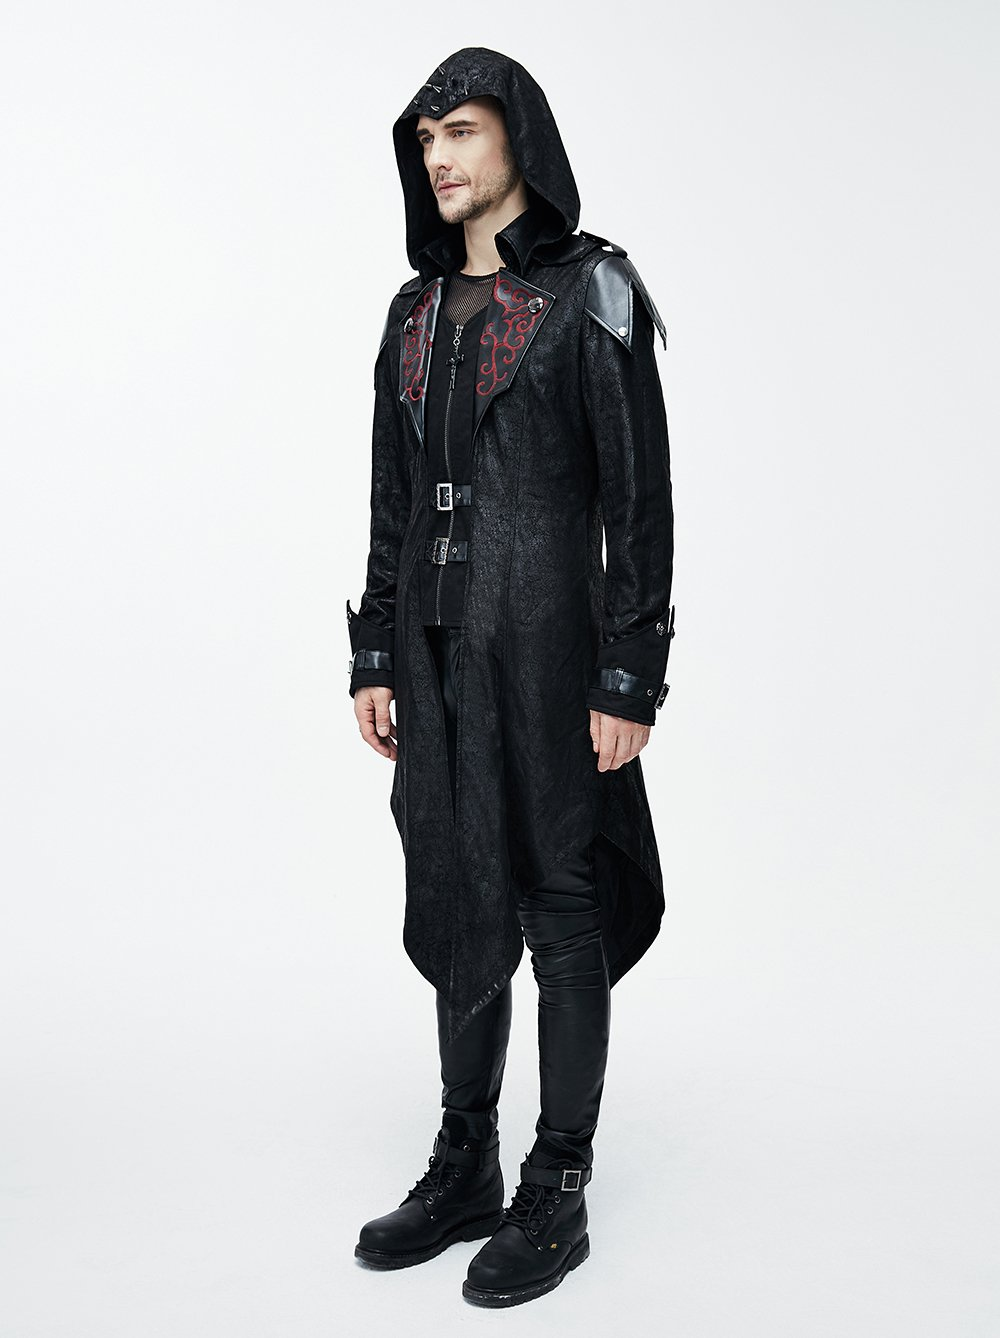 Devil Fashion Punk Men Jackets Faux Leather Steampunk Gothic Swallowtail Coats Autumn Winter Long Hooded Coats Overcoat 4